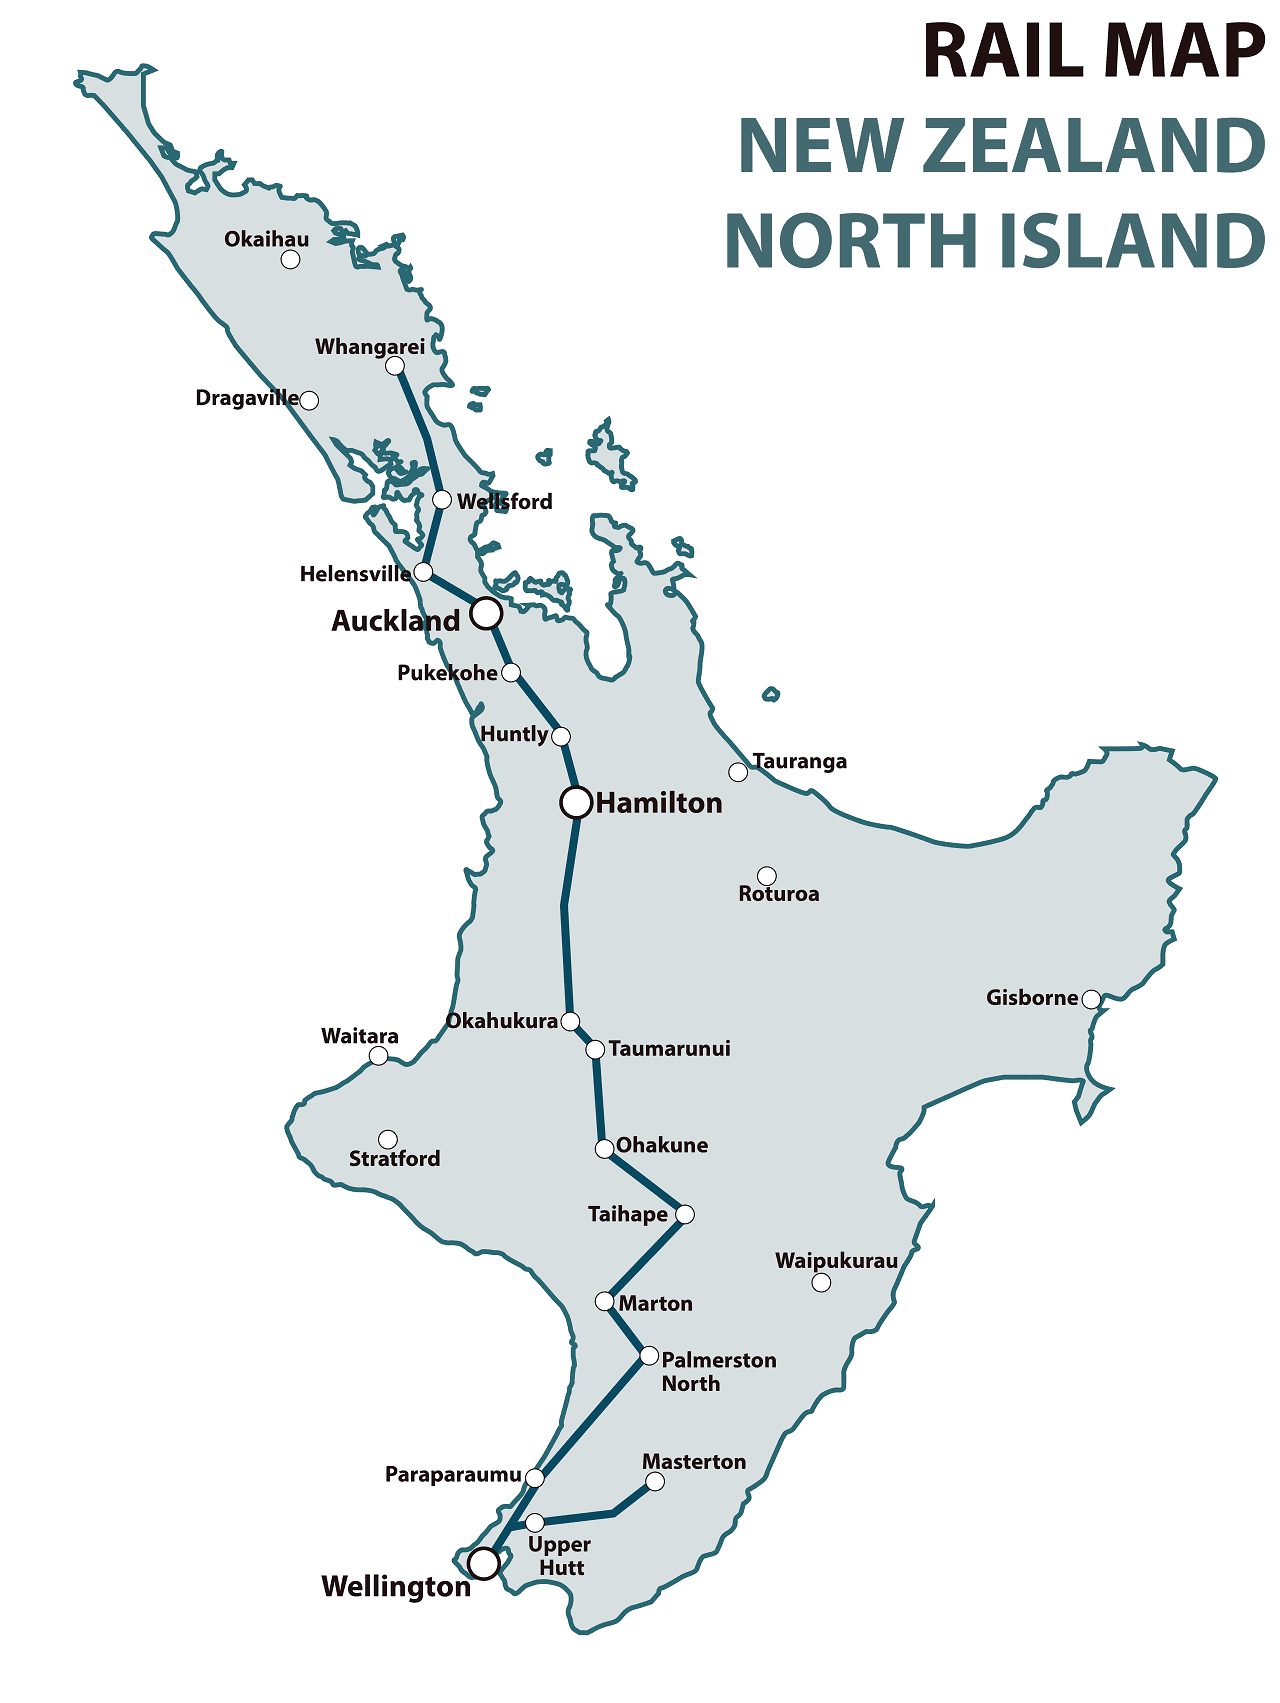 New Zealand north island rail map